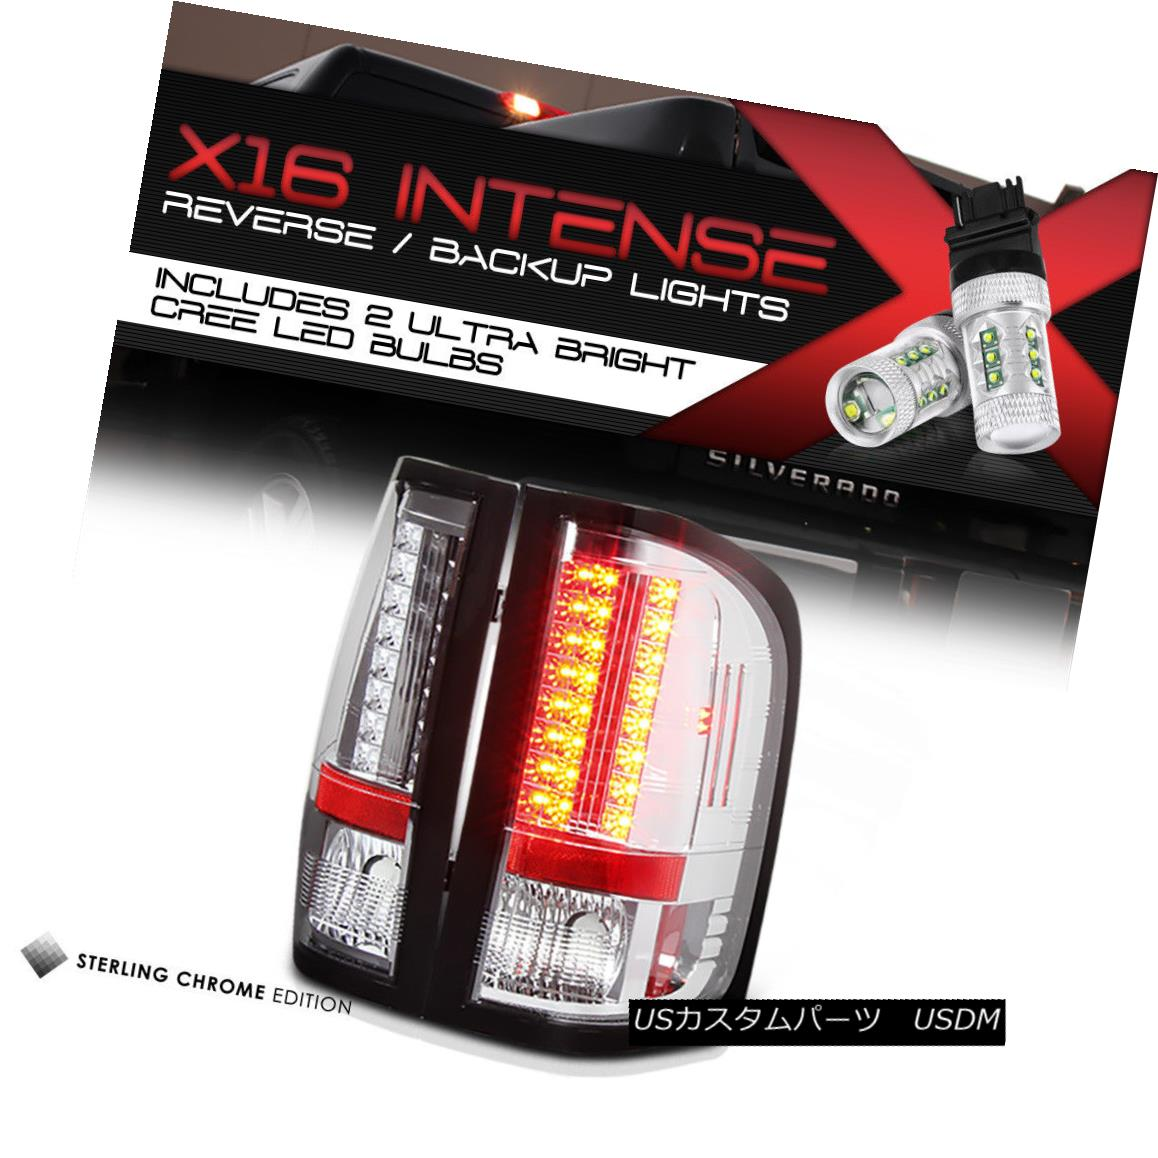 テールライト [High-Power SMD Reverse] Chevy Silverado 2007-2013 LED SMD Rear Tail Lights SET [ハイパワーSMDリバース] Chevy Silverado 2007-2013 LED SMDリアテールライトセット